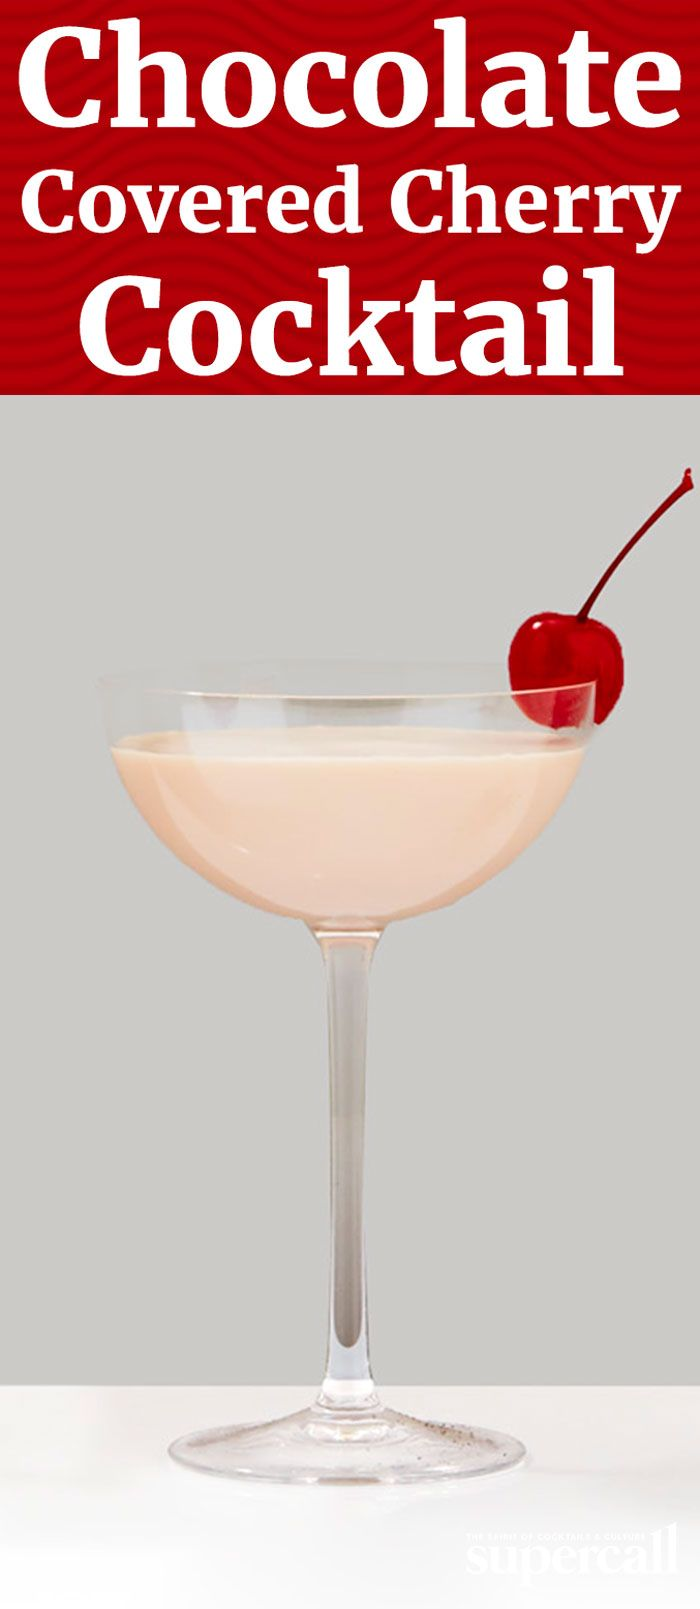 If you're a fan of indulgent, syrupy-sweet chocolate-dipped maraschino cherries, you're going to love this liquid take on the classic dessert. Two types of chocolate liqueur join forces with cherry vodka and half and half to give the drink a creamy finish.